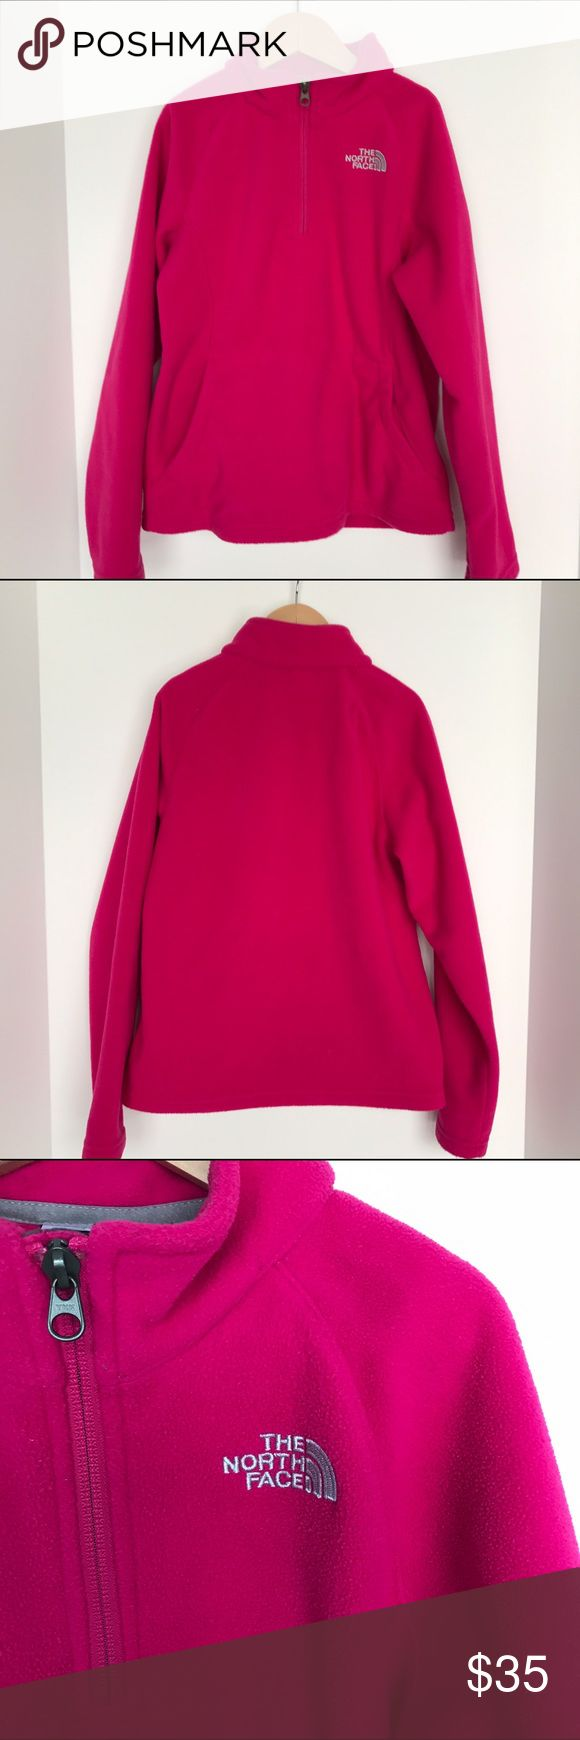 Girls North Face Bright Pink 3/4 zip fleece M10-12 Girls size Med10-12. The North Face. 3/4 zip kangaroo pocket in front. Heavier than the normal 3/4 zip fleeces. No stains. Comes from a smoke and pet free home The North Face Jackets & Coats